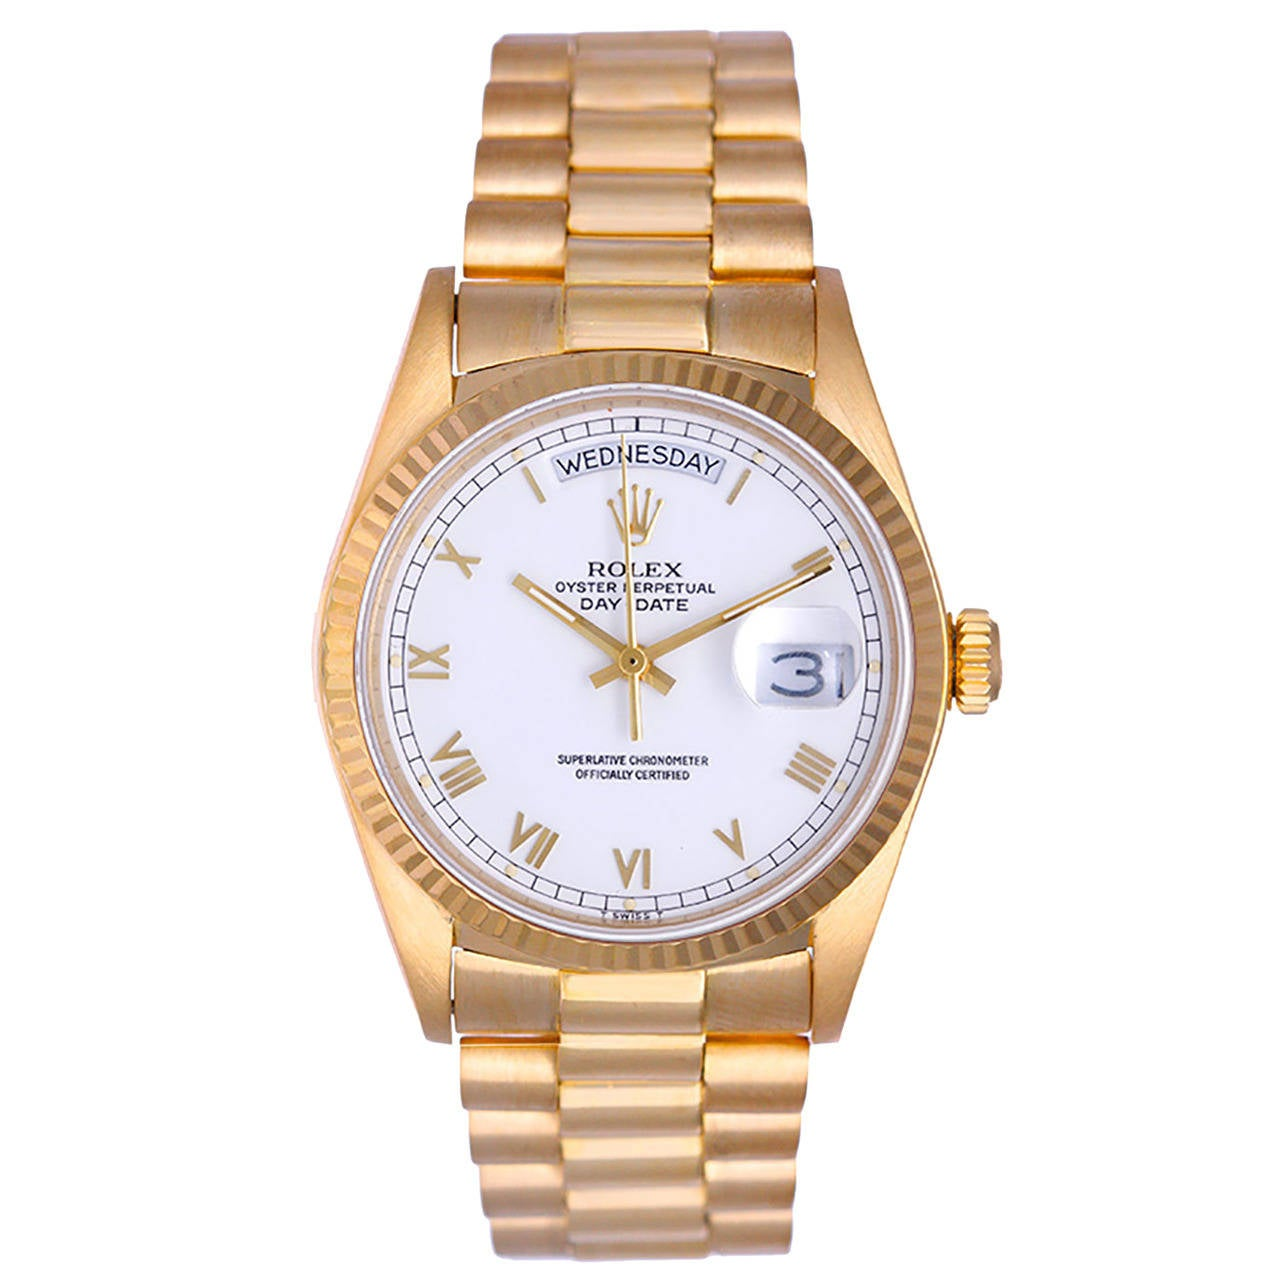 Rolex Yellow Gold Day-Date President Wristwatch Ref 18038 with White Roman Dial